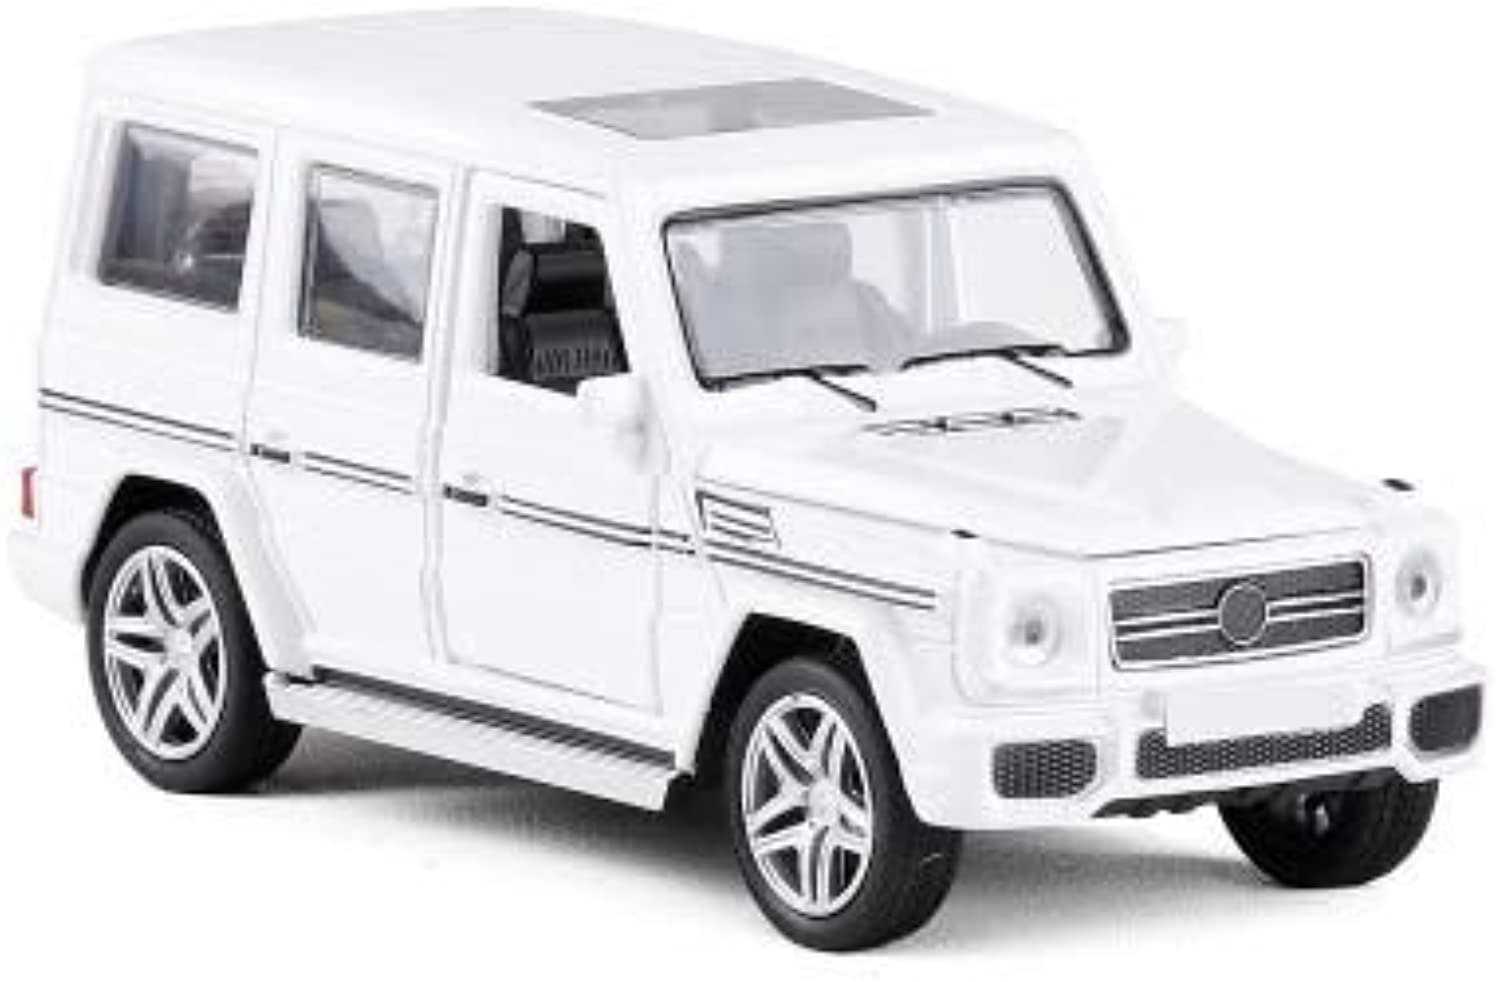 Generic 1 32 Diecasts Toy Vehicles G65 AMG Car Model with Sound Light Pull Back Car Toys for Boy Gift Collection White